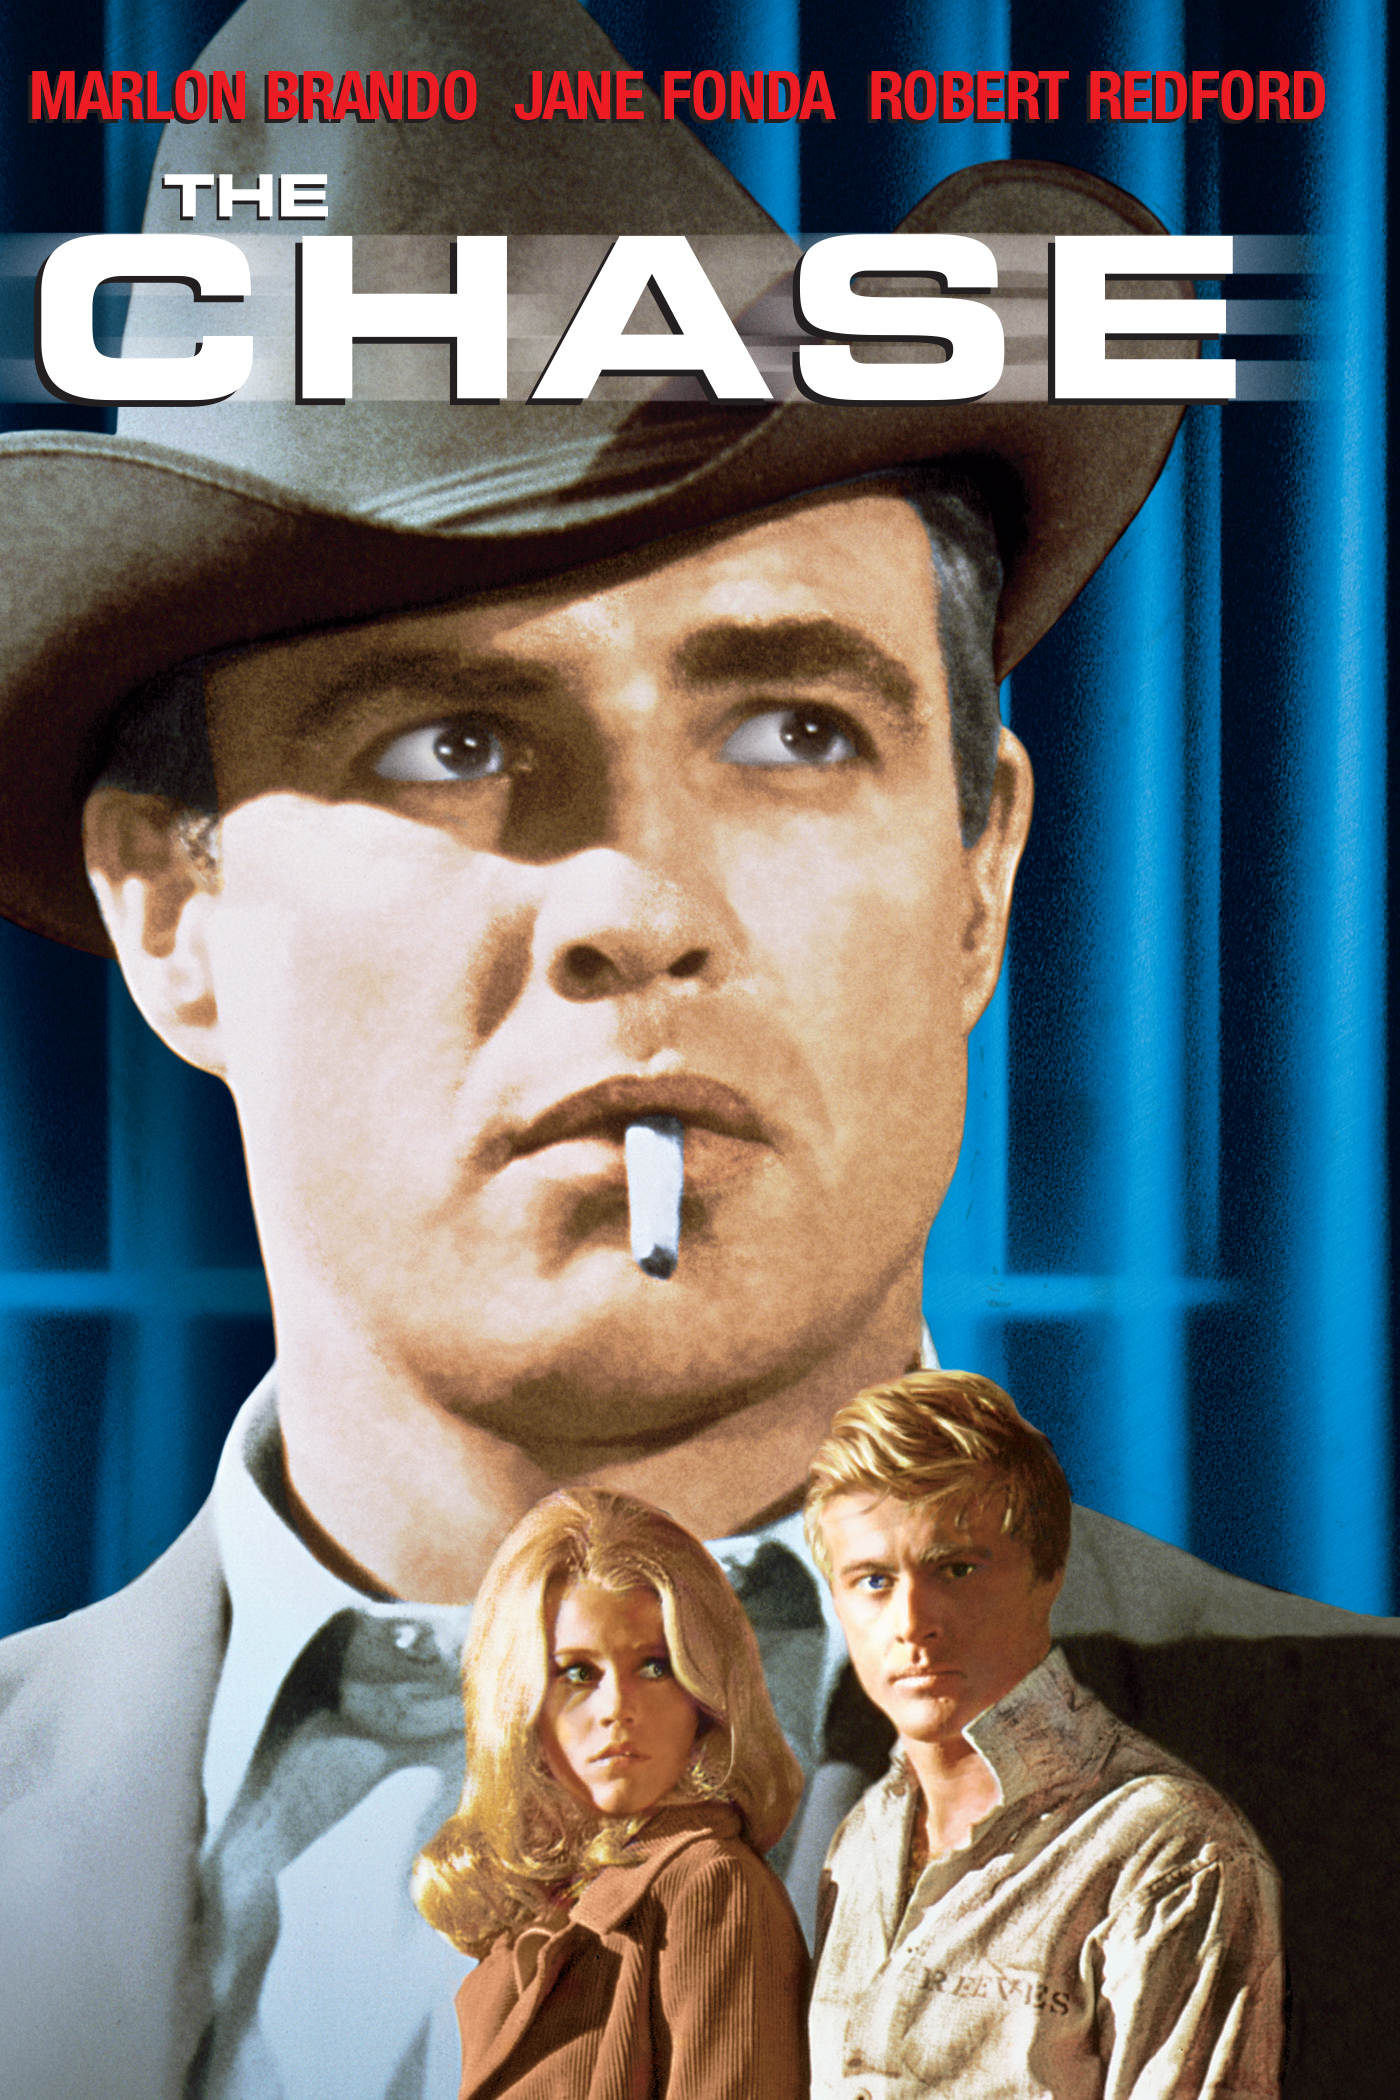 the chase Affiche film, Films cinema, Film